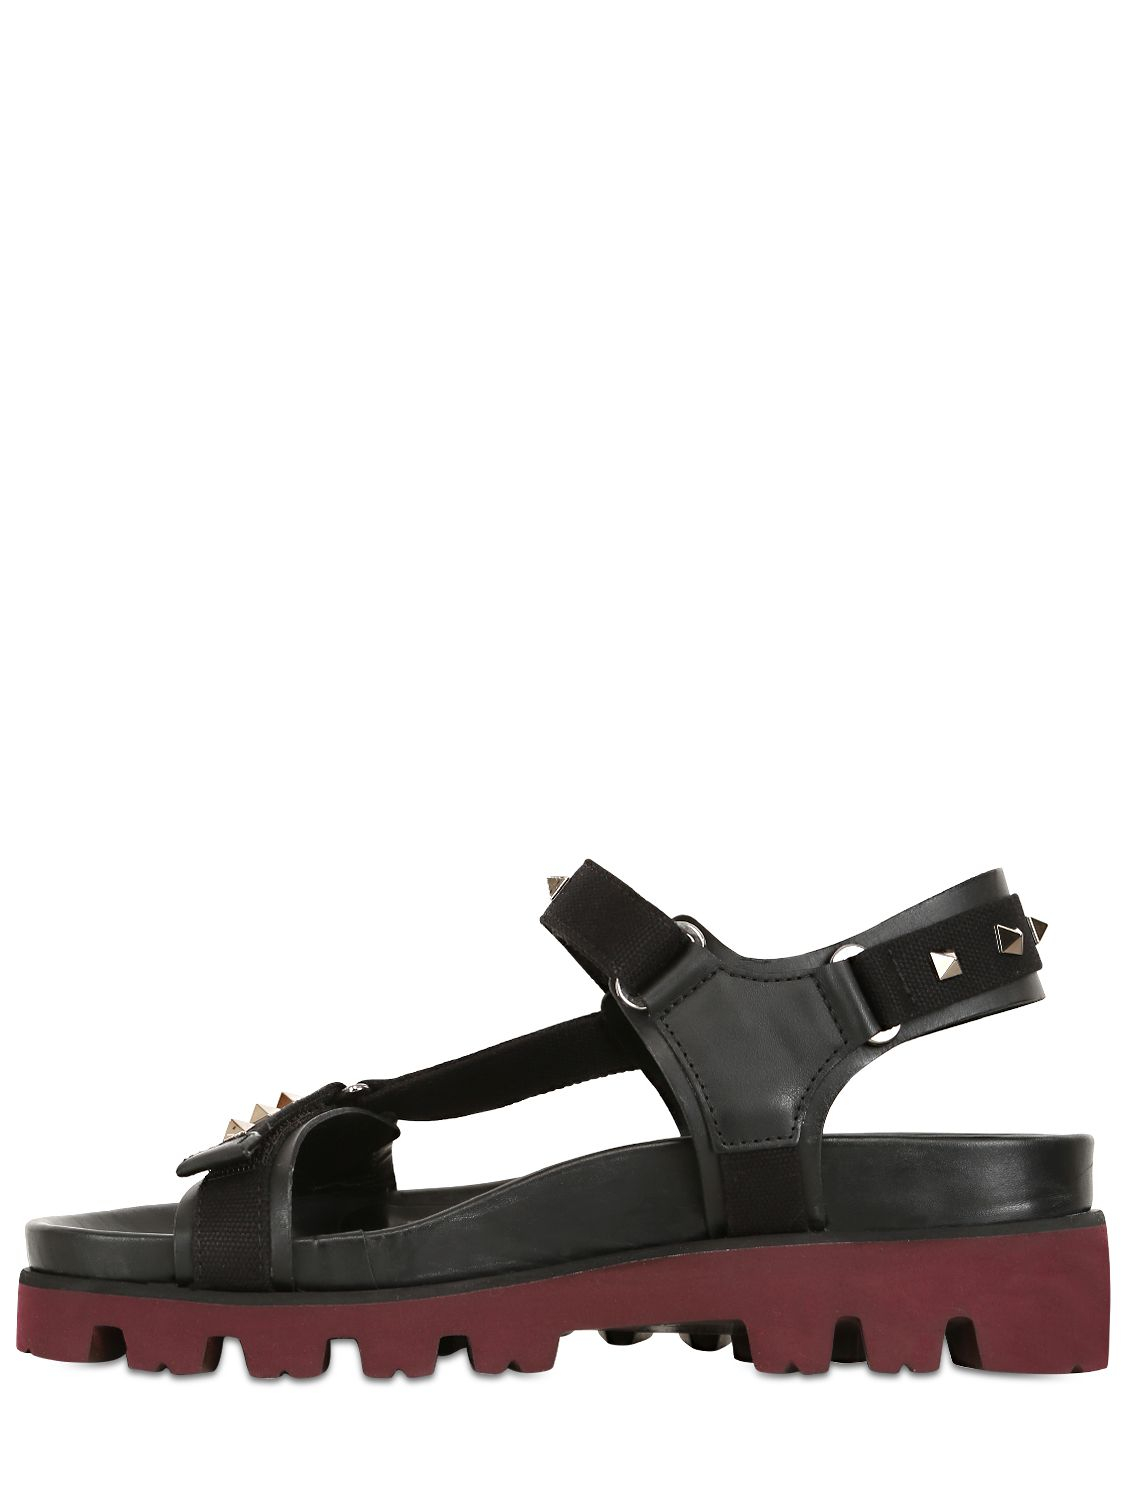 Black sandals with straps - Gallery